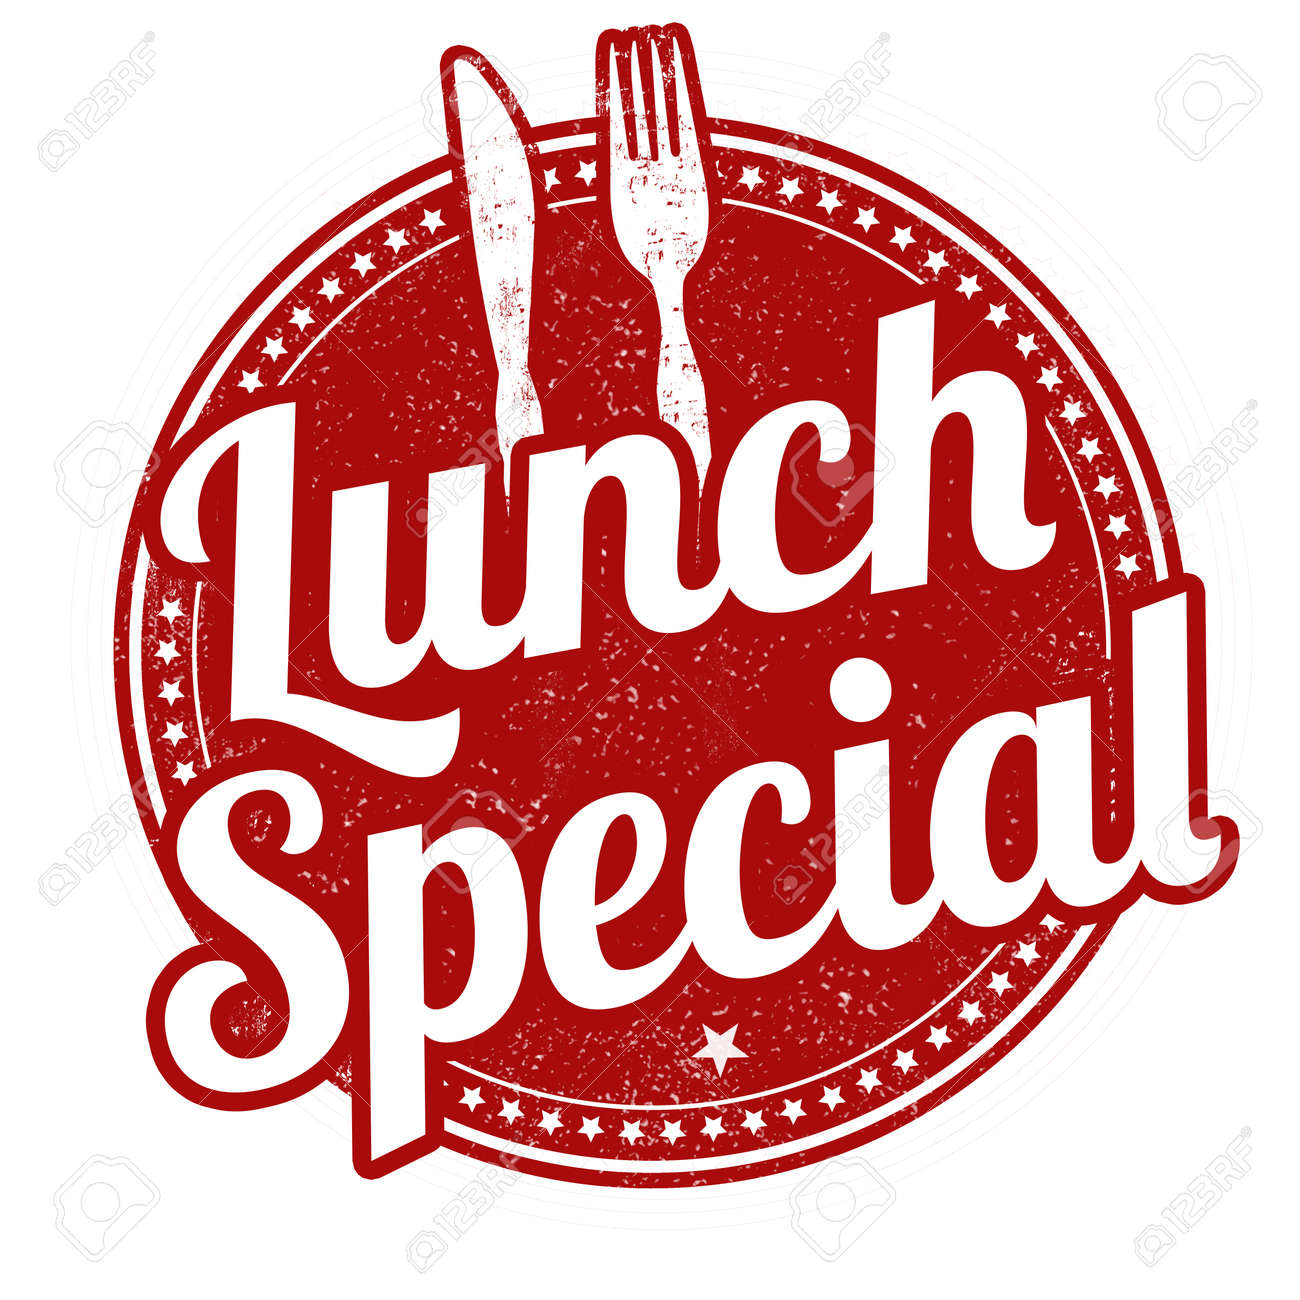 Lunch special grunge rubber stamp on white background, illustration - 53976075